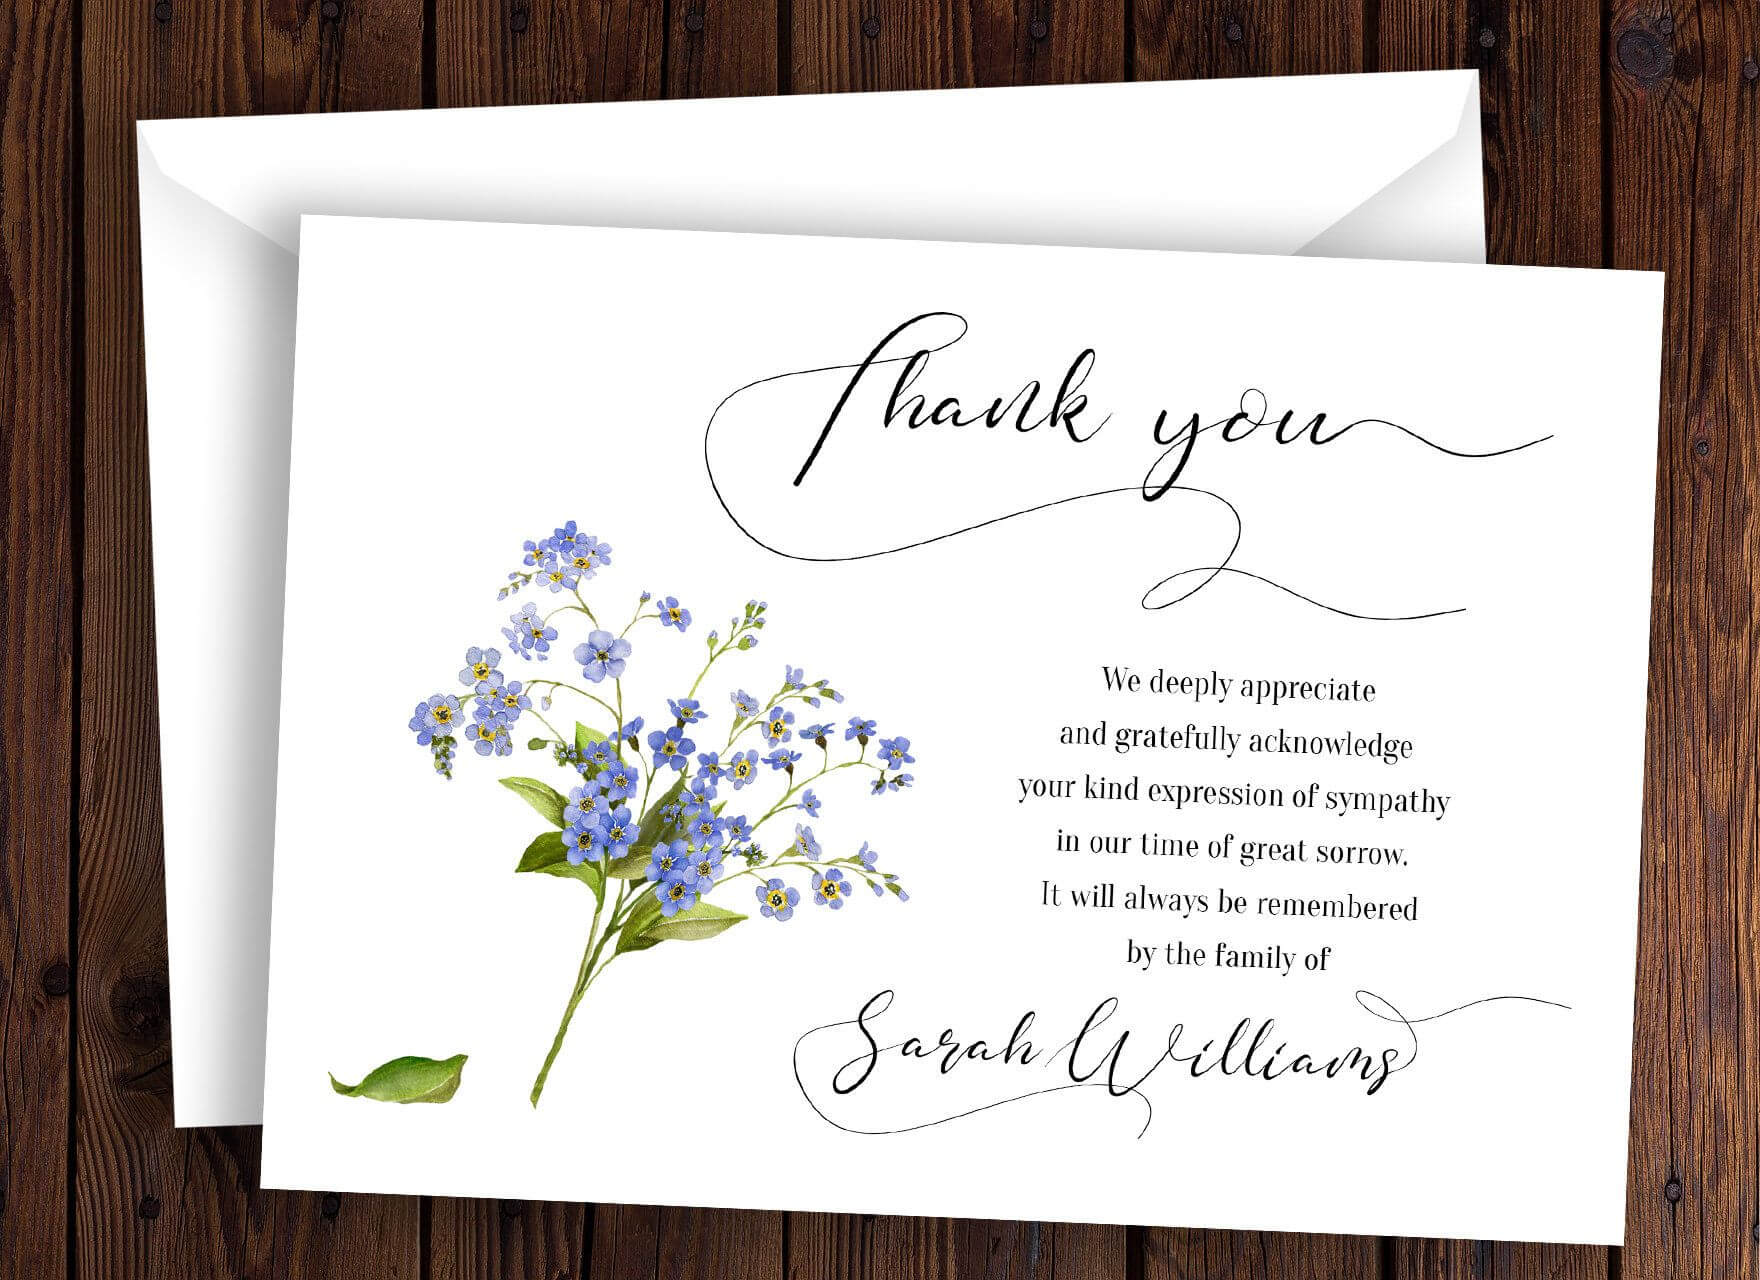 Personalized Funeral Thank You Card Sympathy Thank You Card throughout Sympathy Thank You Card Template